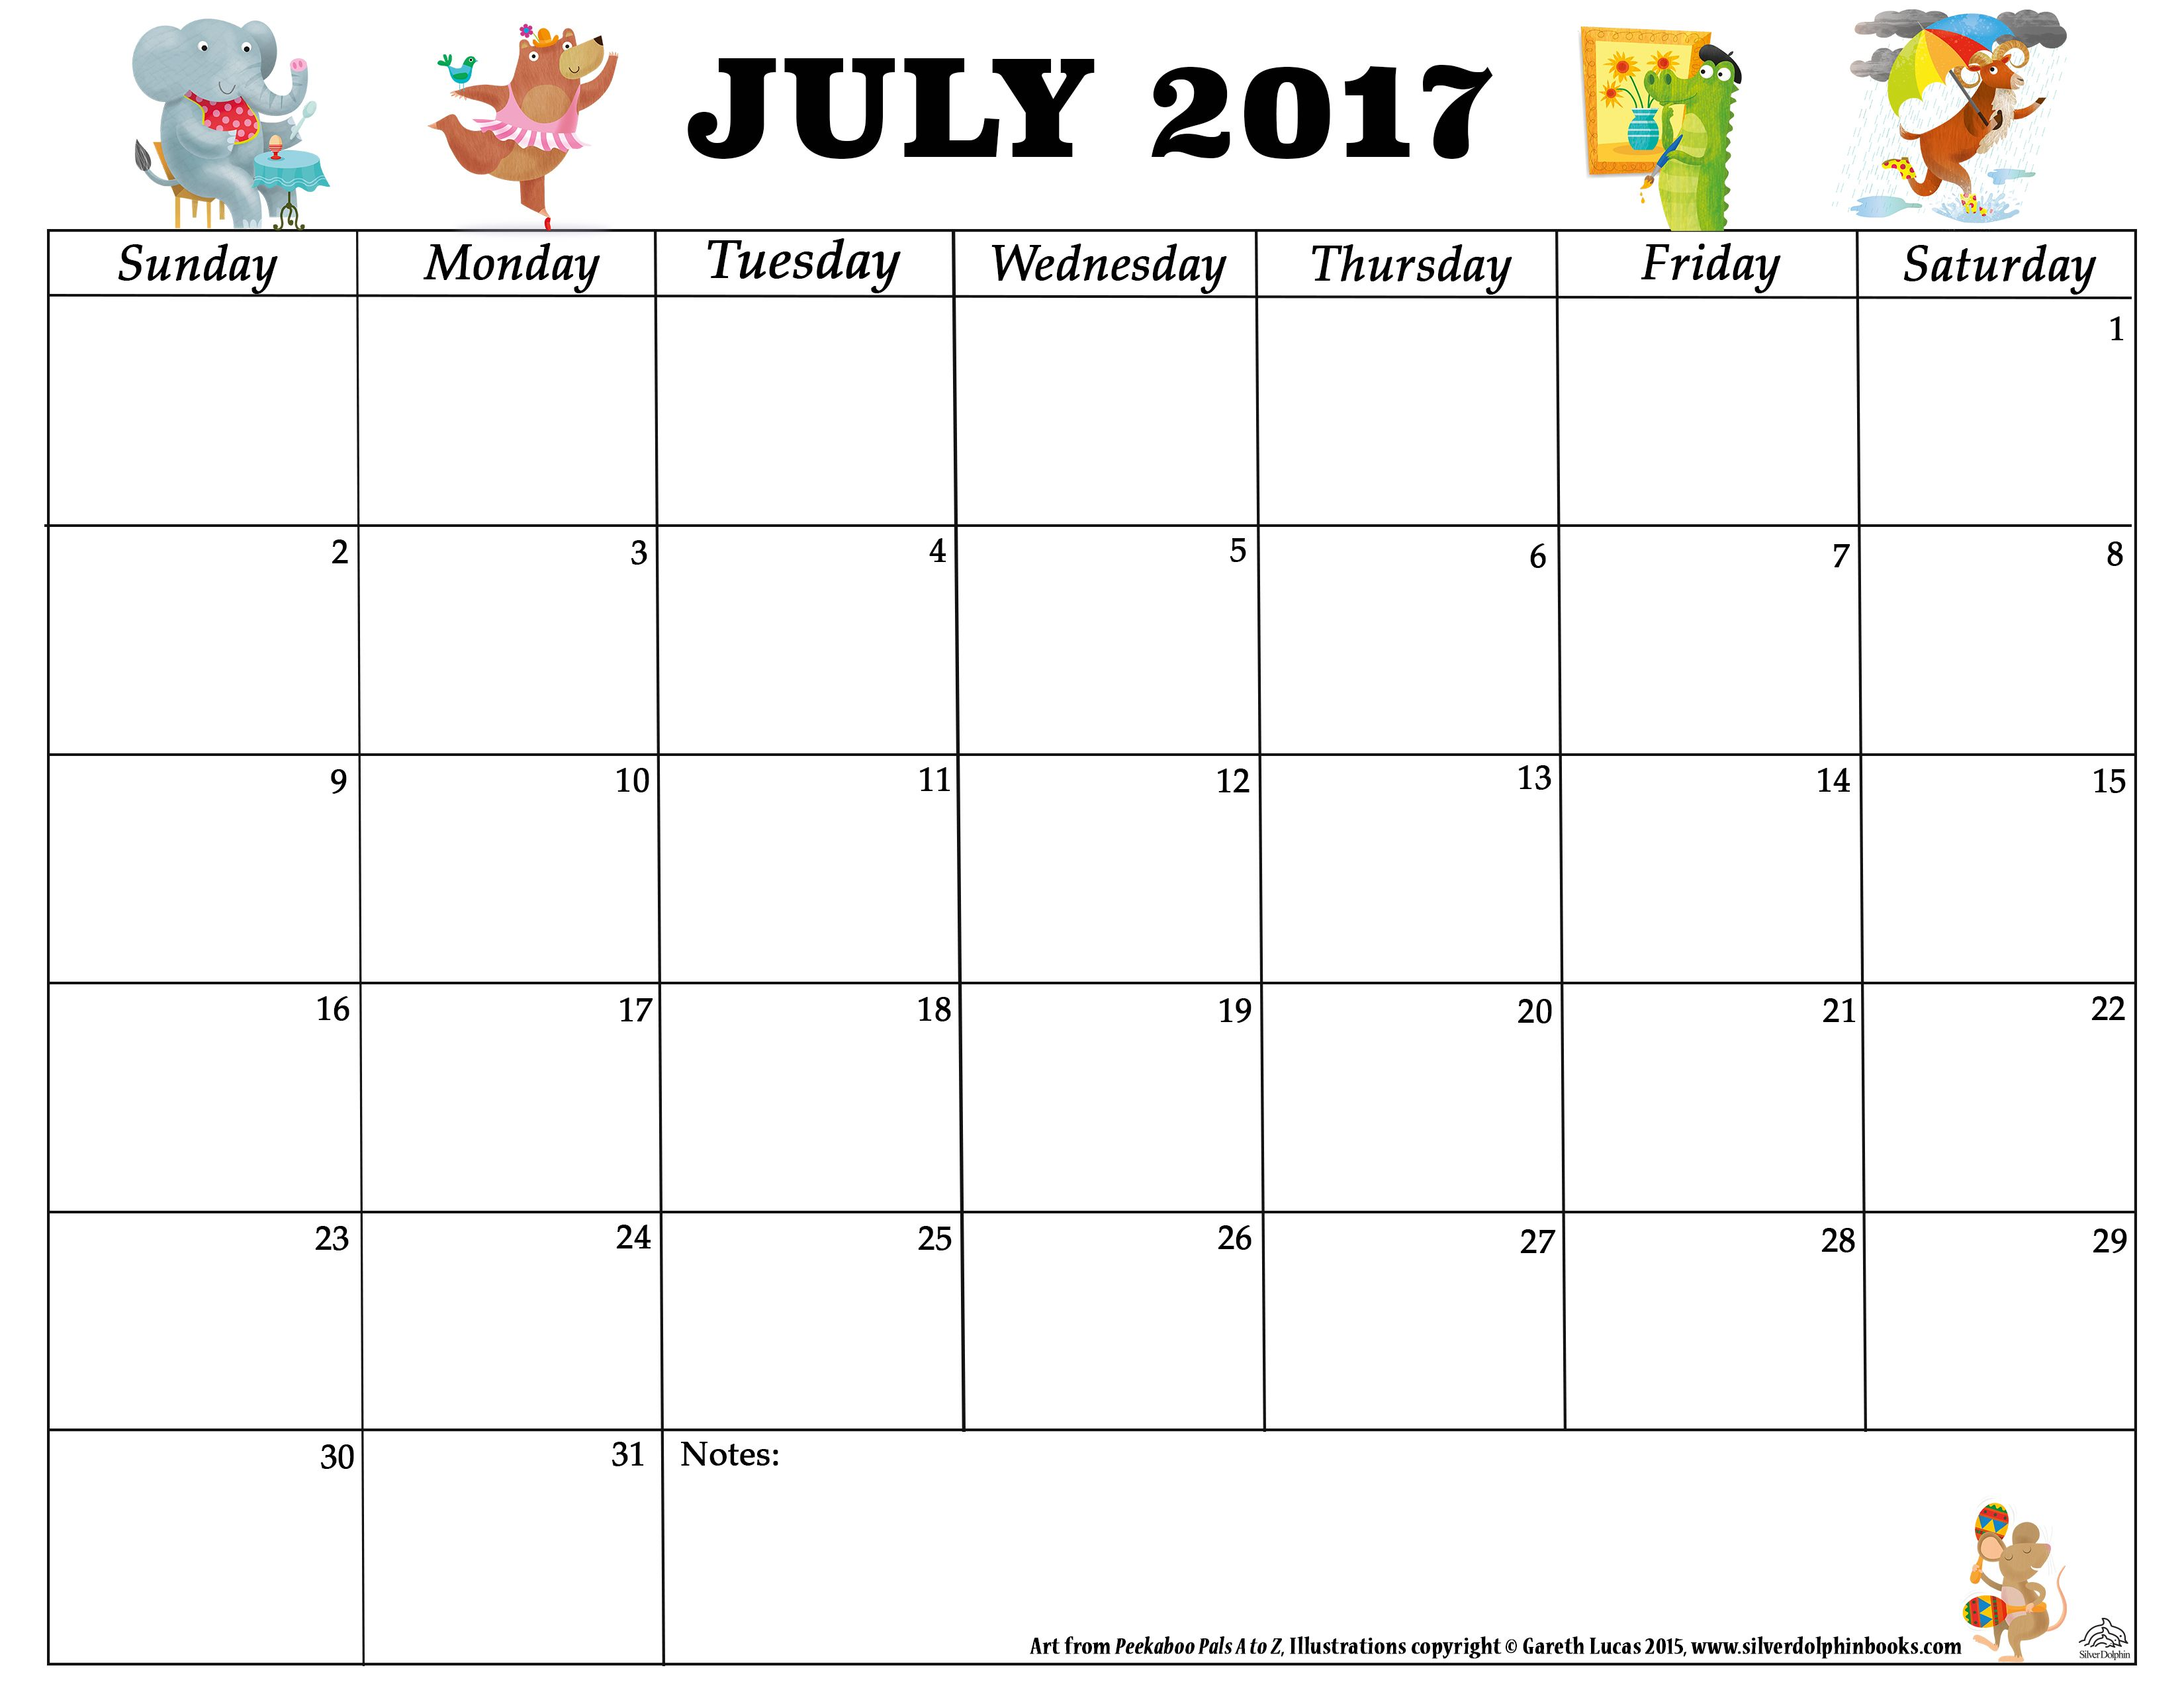 2017 July Printable Calendar | July 2017 Calendar | Pinterest ...